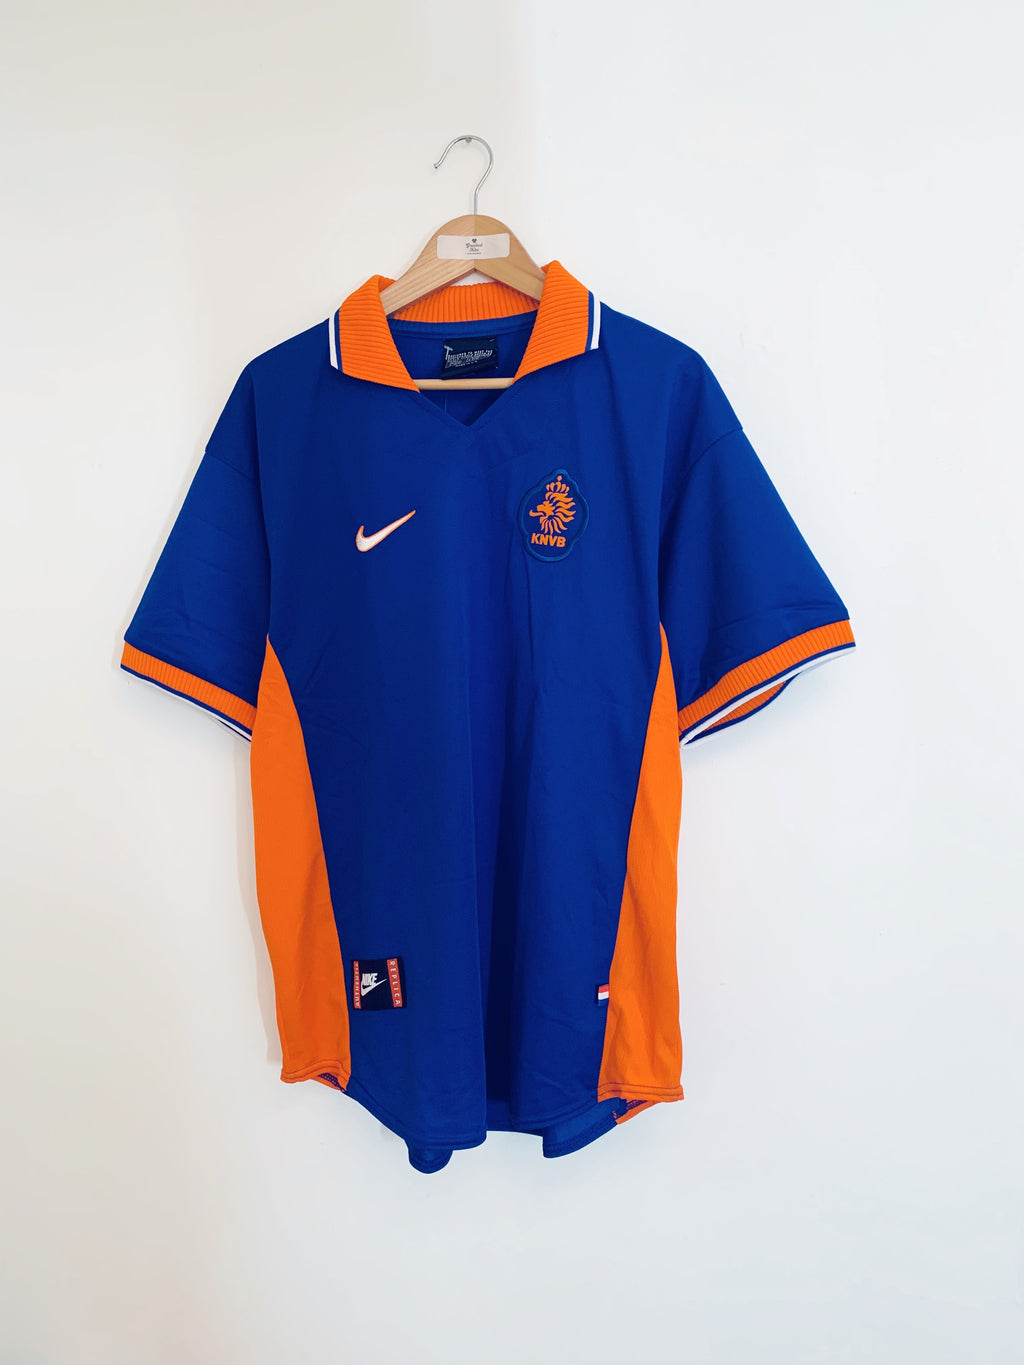 1997/98 Holland Away Shirt (L) 9.5/10